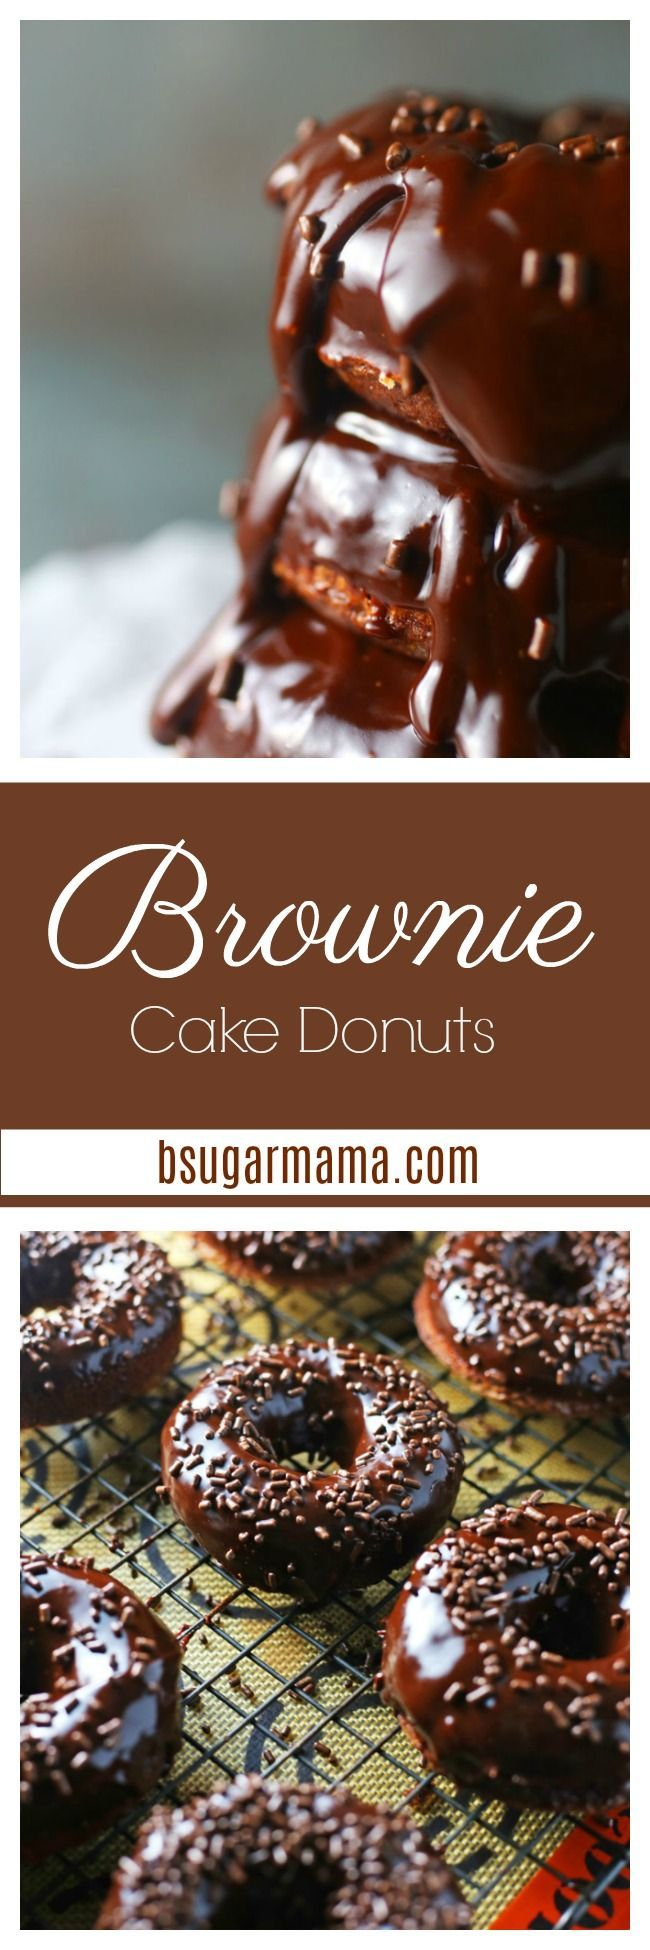 You will enjoy these Brownie Baked Cake Donuts with Chocolate Glaze to start your day! Using box brownie mix and an easy chocolate glaze recipe. #chocolate #donuts #brownies